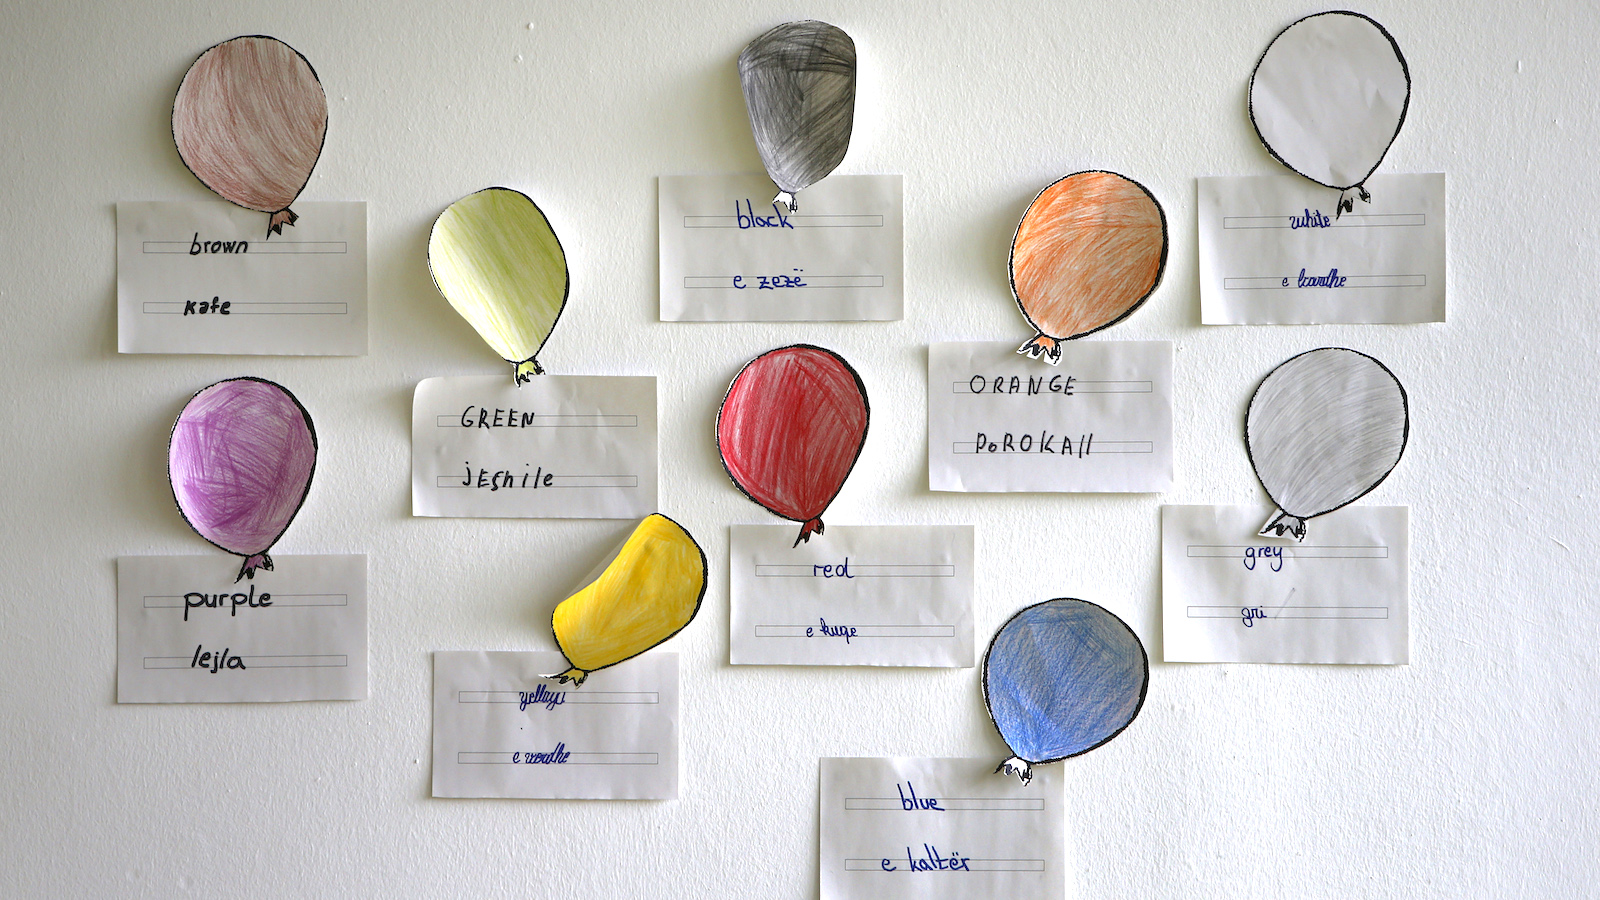 Drawings of balloons in different colours are seen in classroom